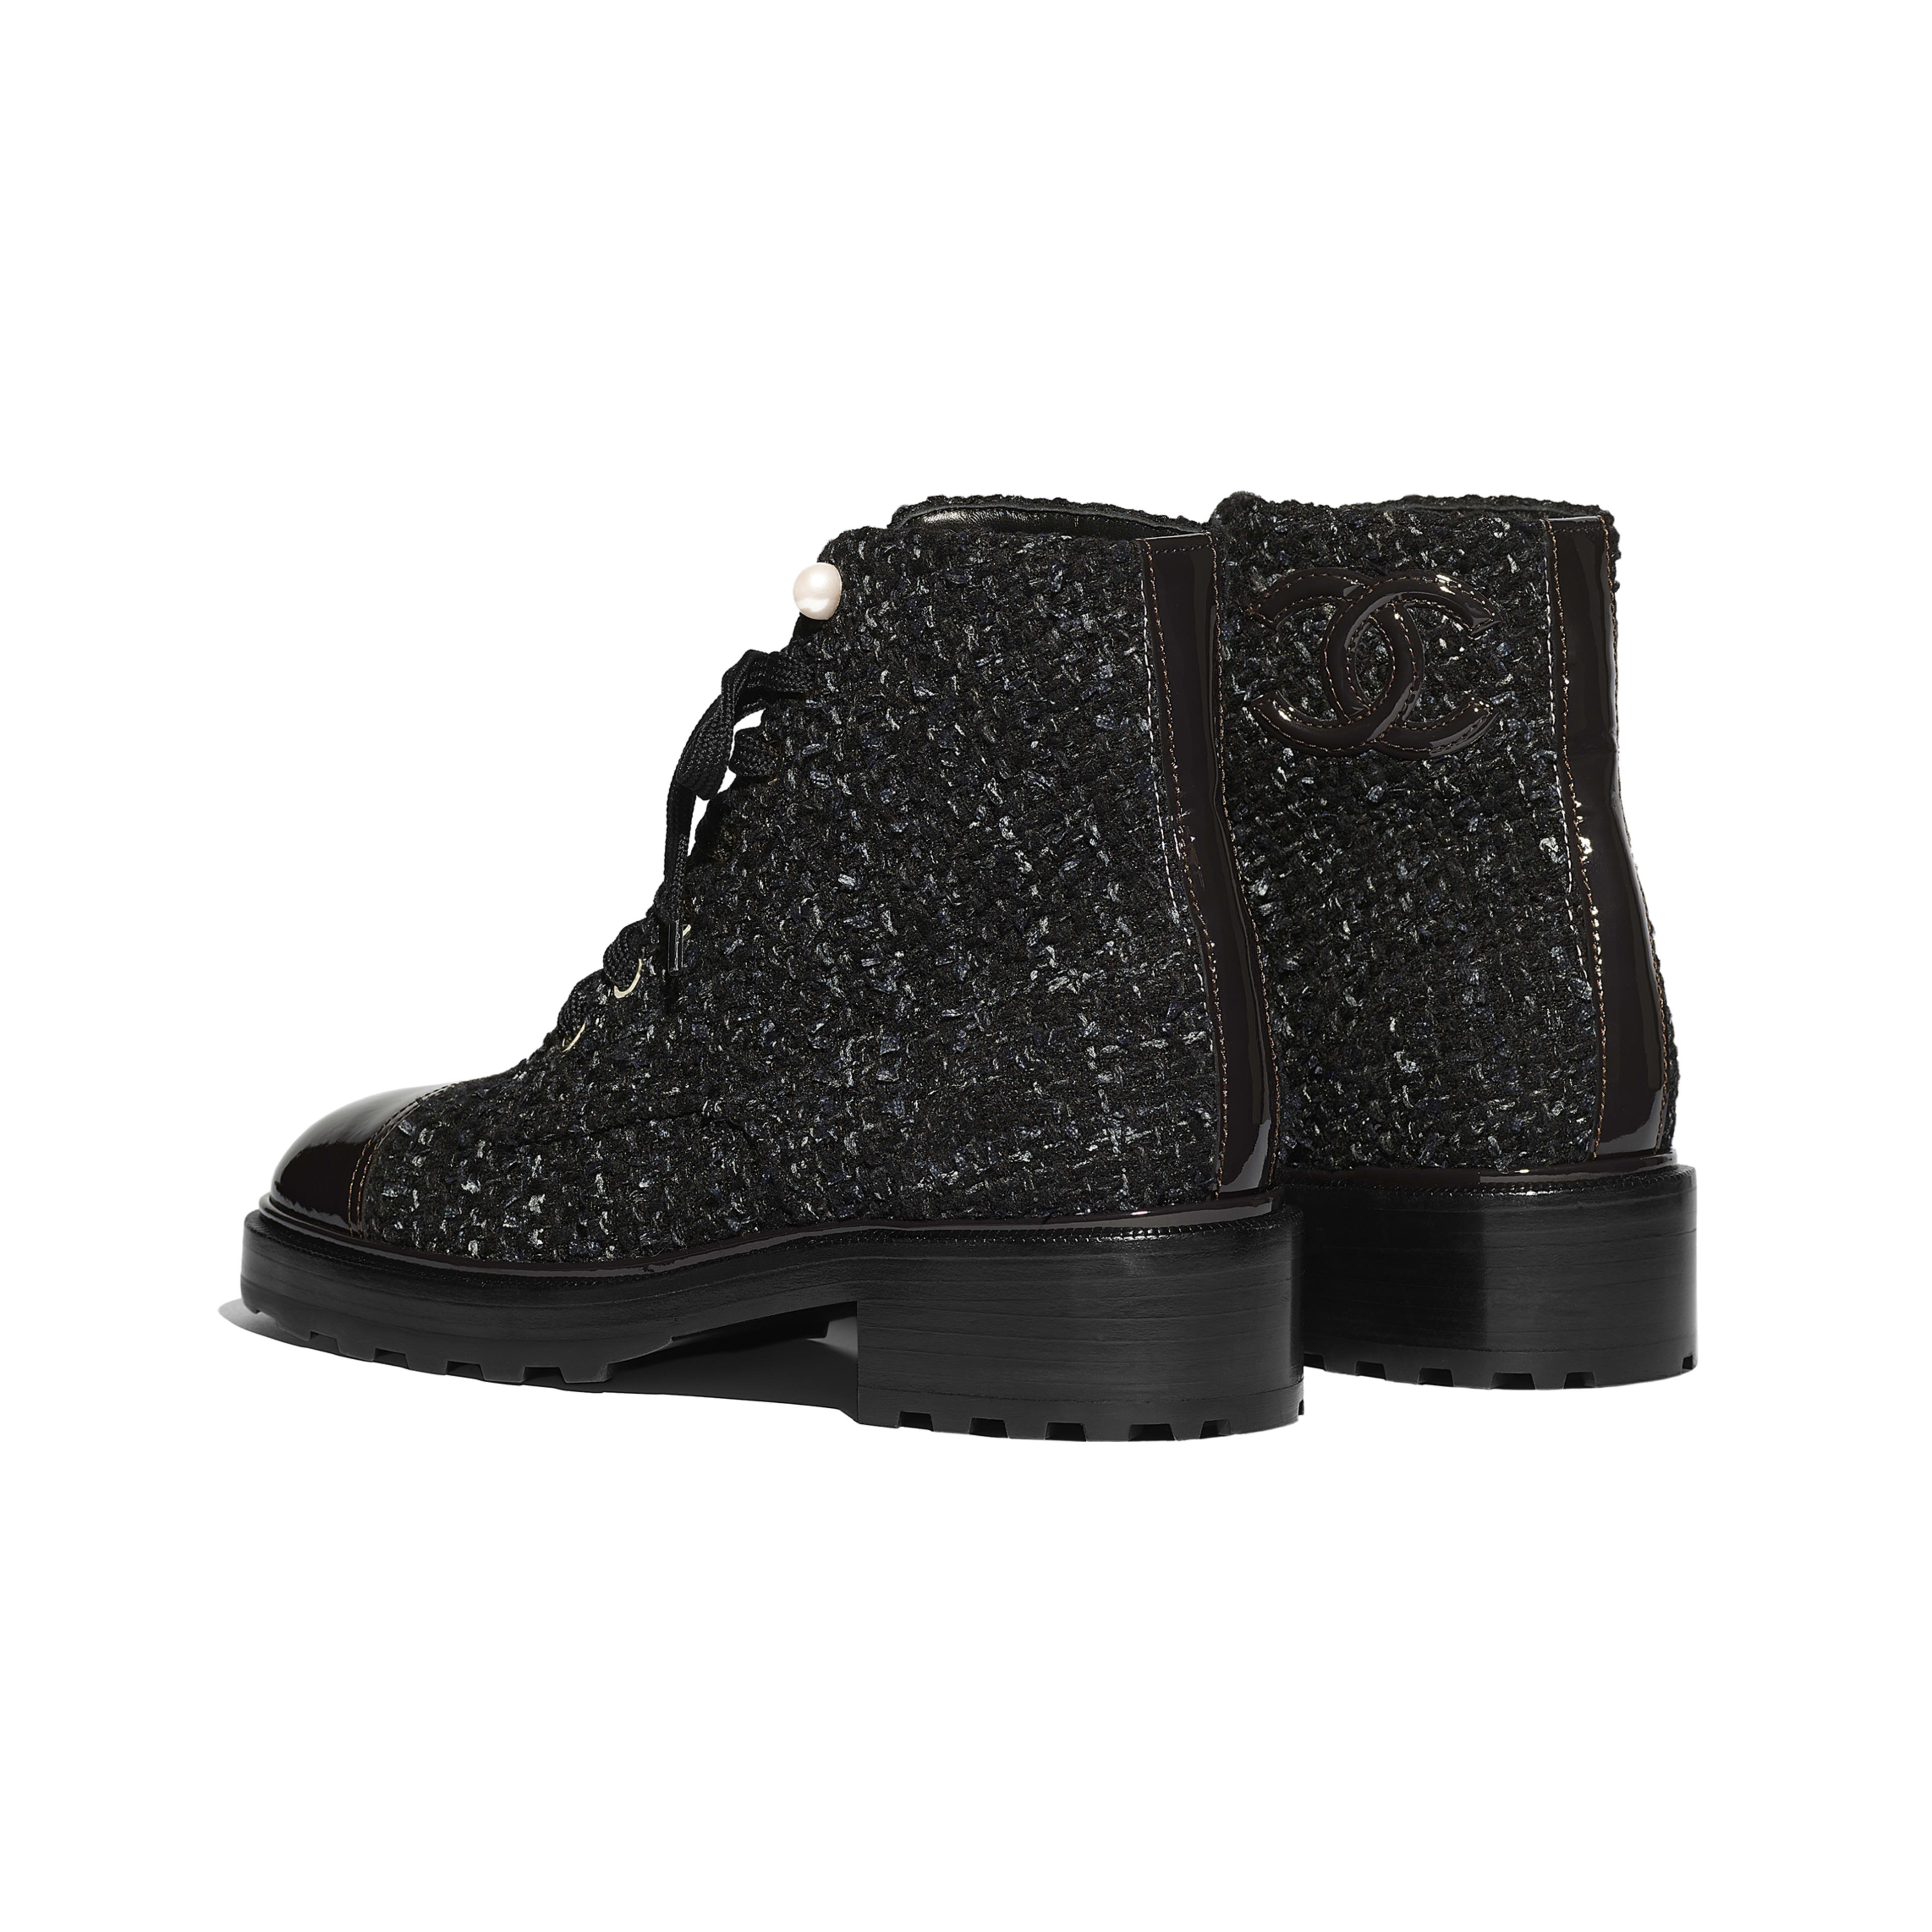 Ankle Boots - Black, Blue & Gray - Tweed & Patent Calfskin - Other view - see full sized version